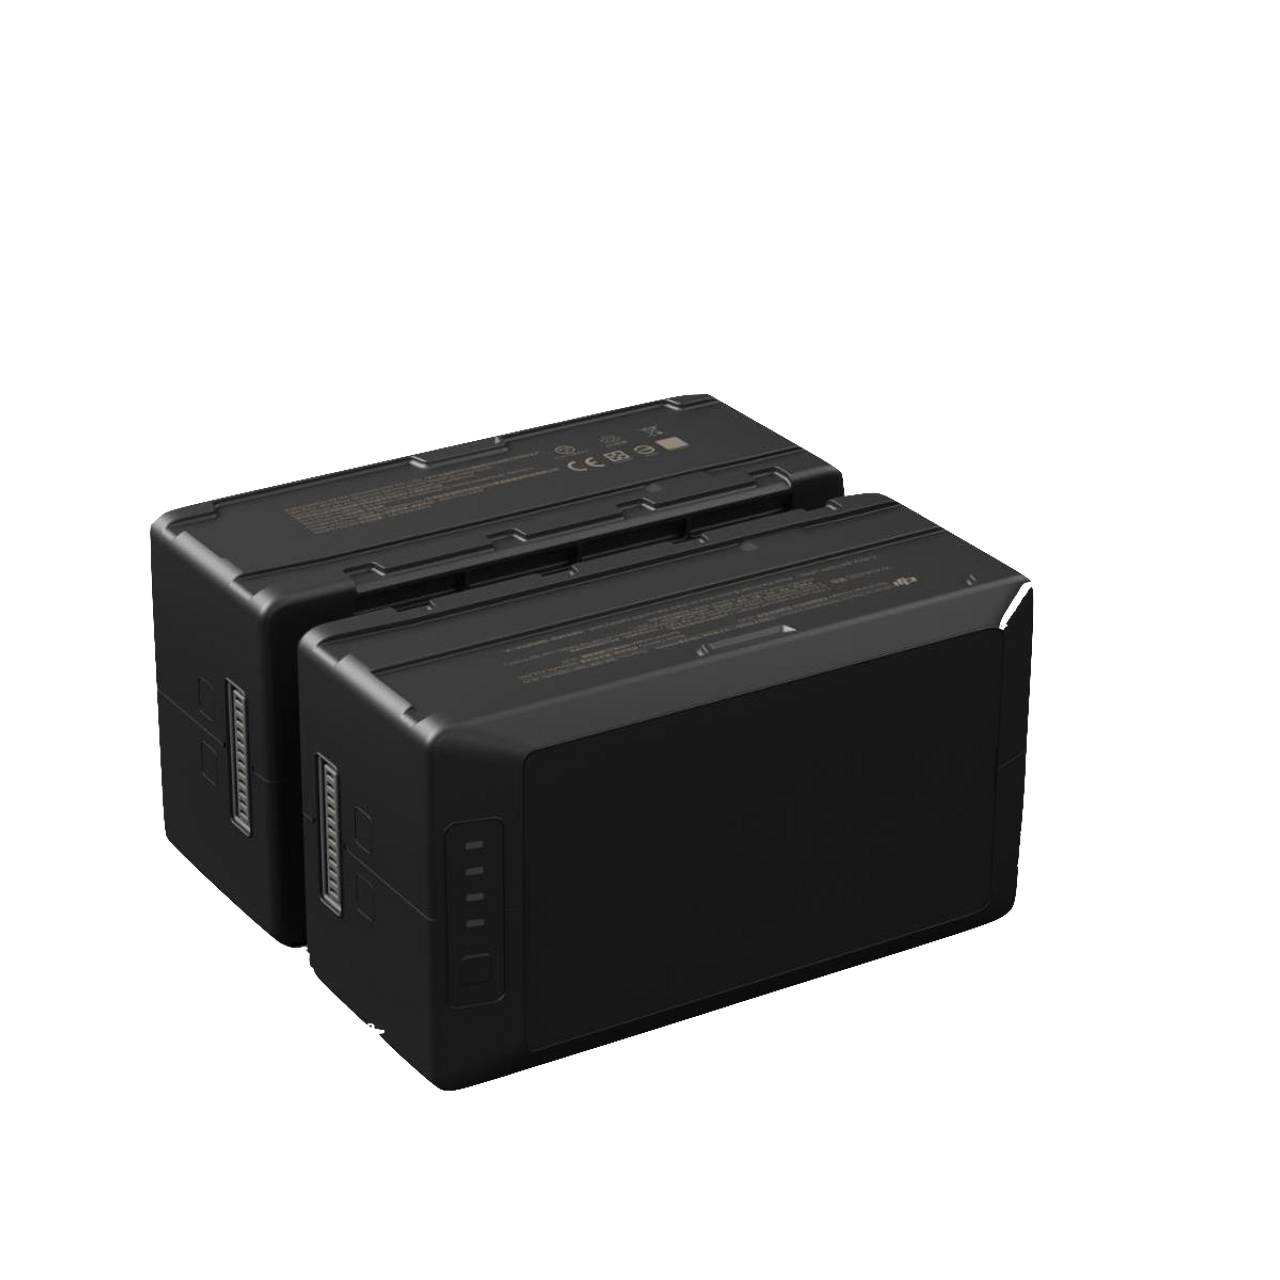 The high-capacity, hot-swappable TB60 Intelligent Flight Battery lets operators change batteries without powering off, saving time during critical missions.